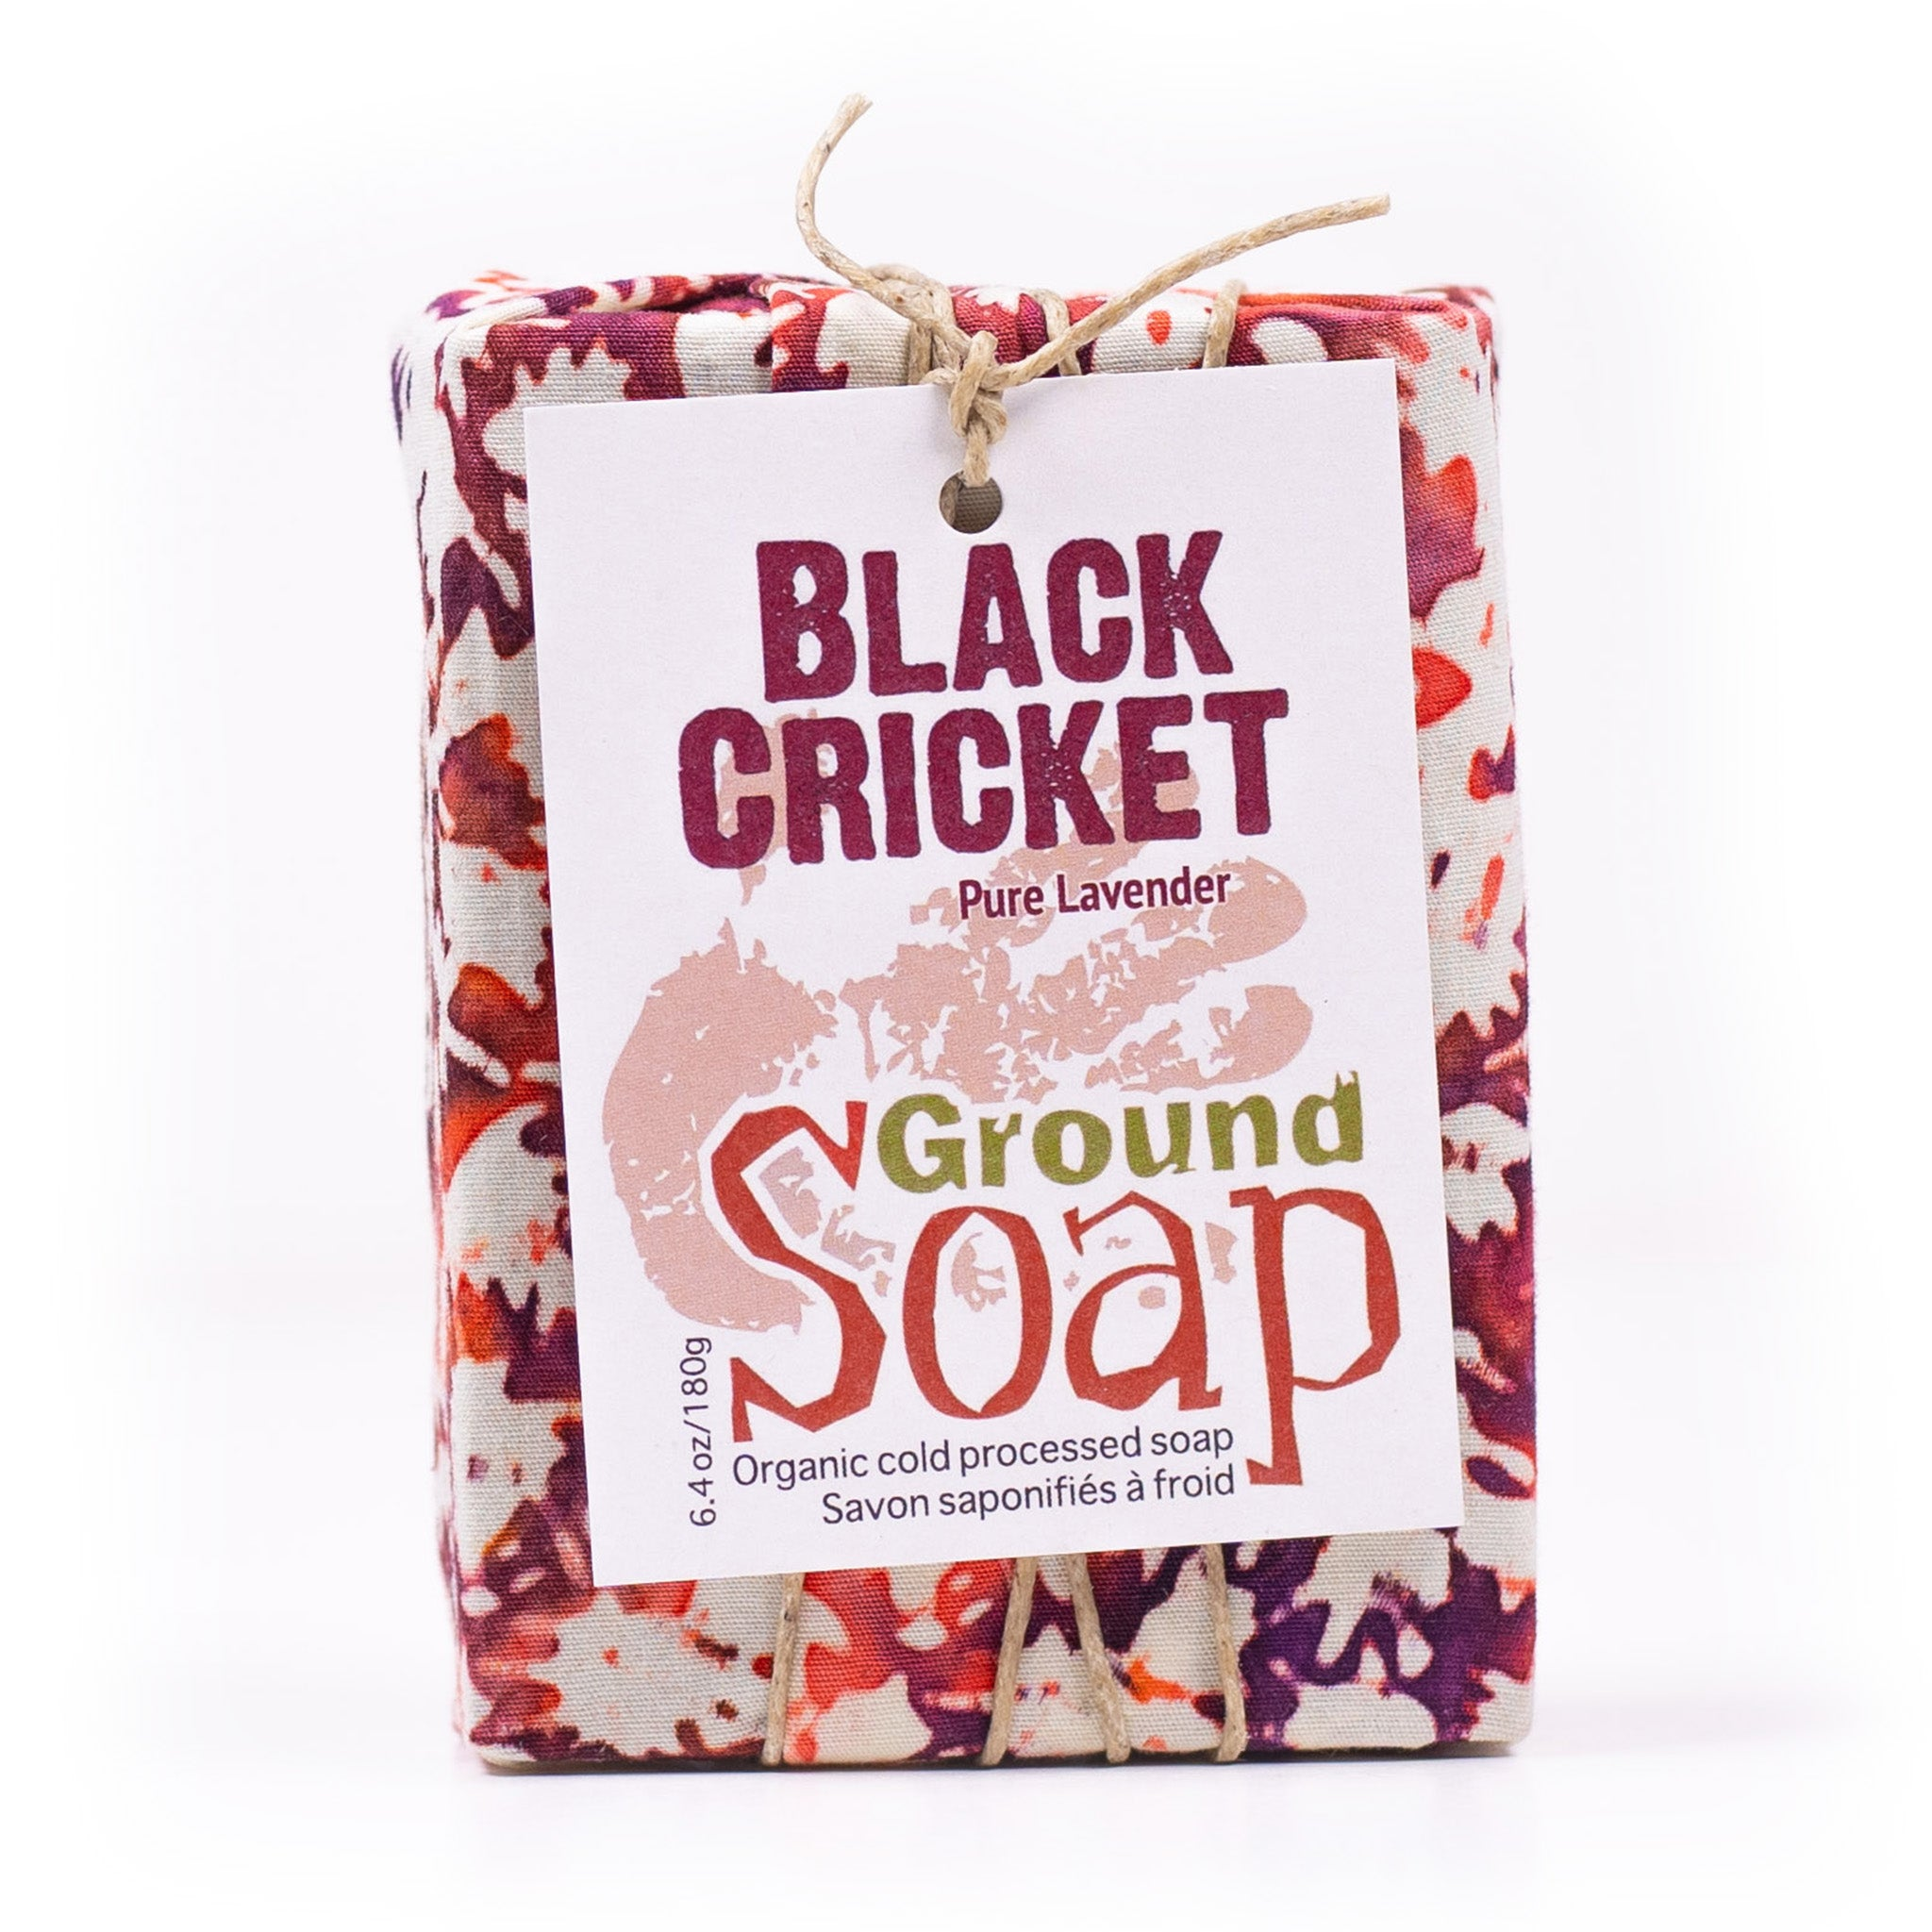 Black Cricket lavender essential oil organic bar soap from ground Soap.